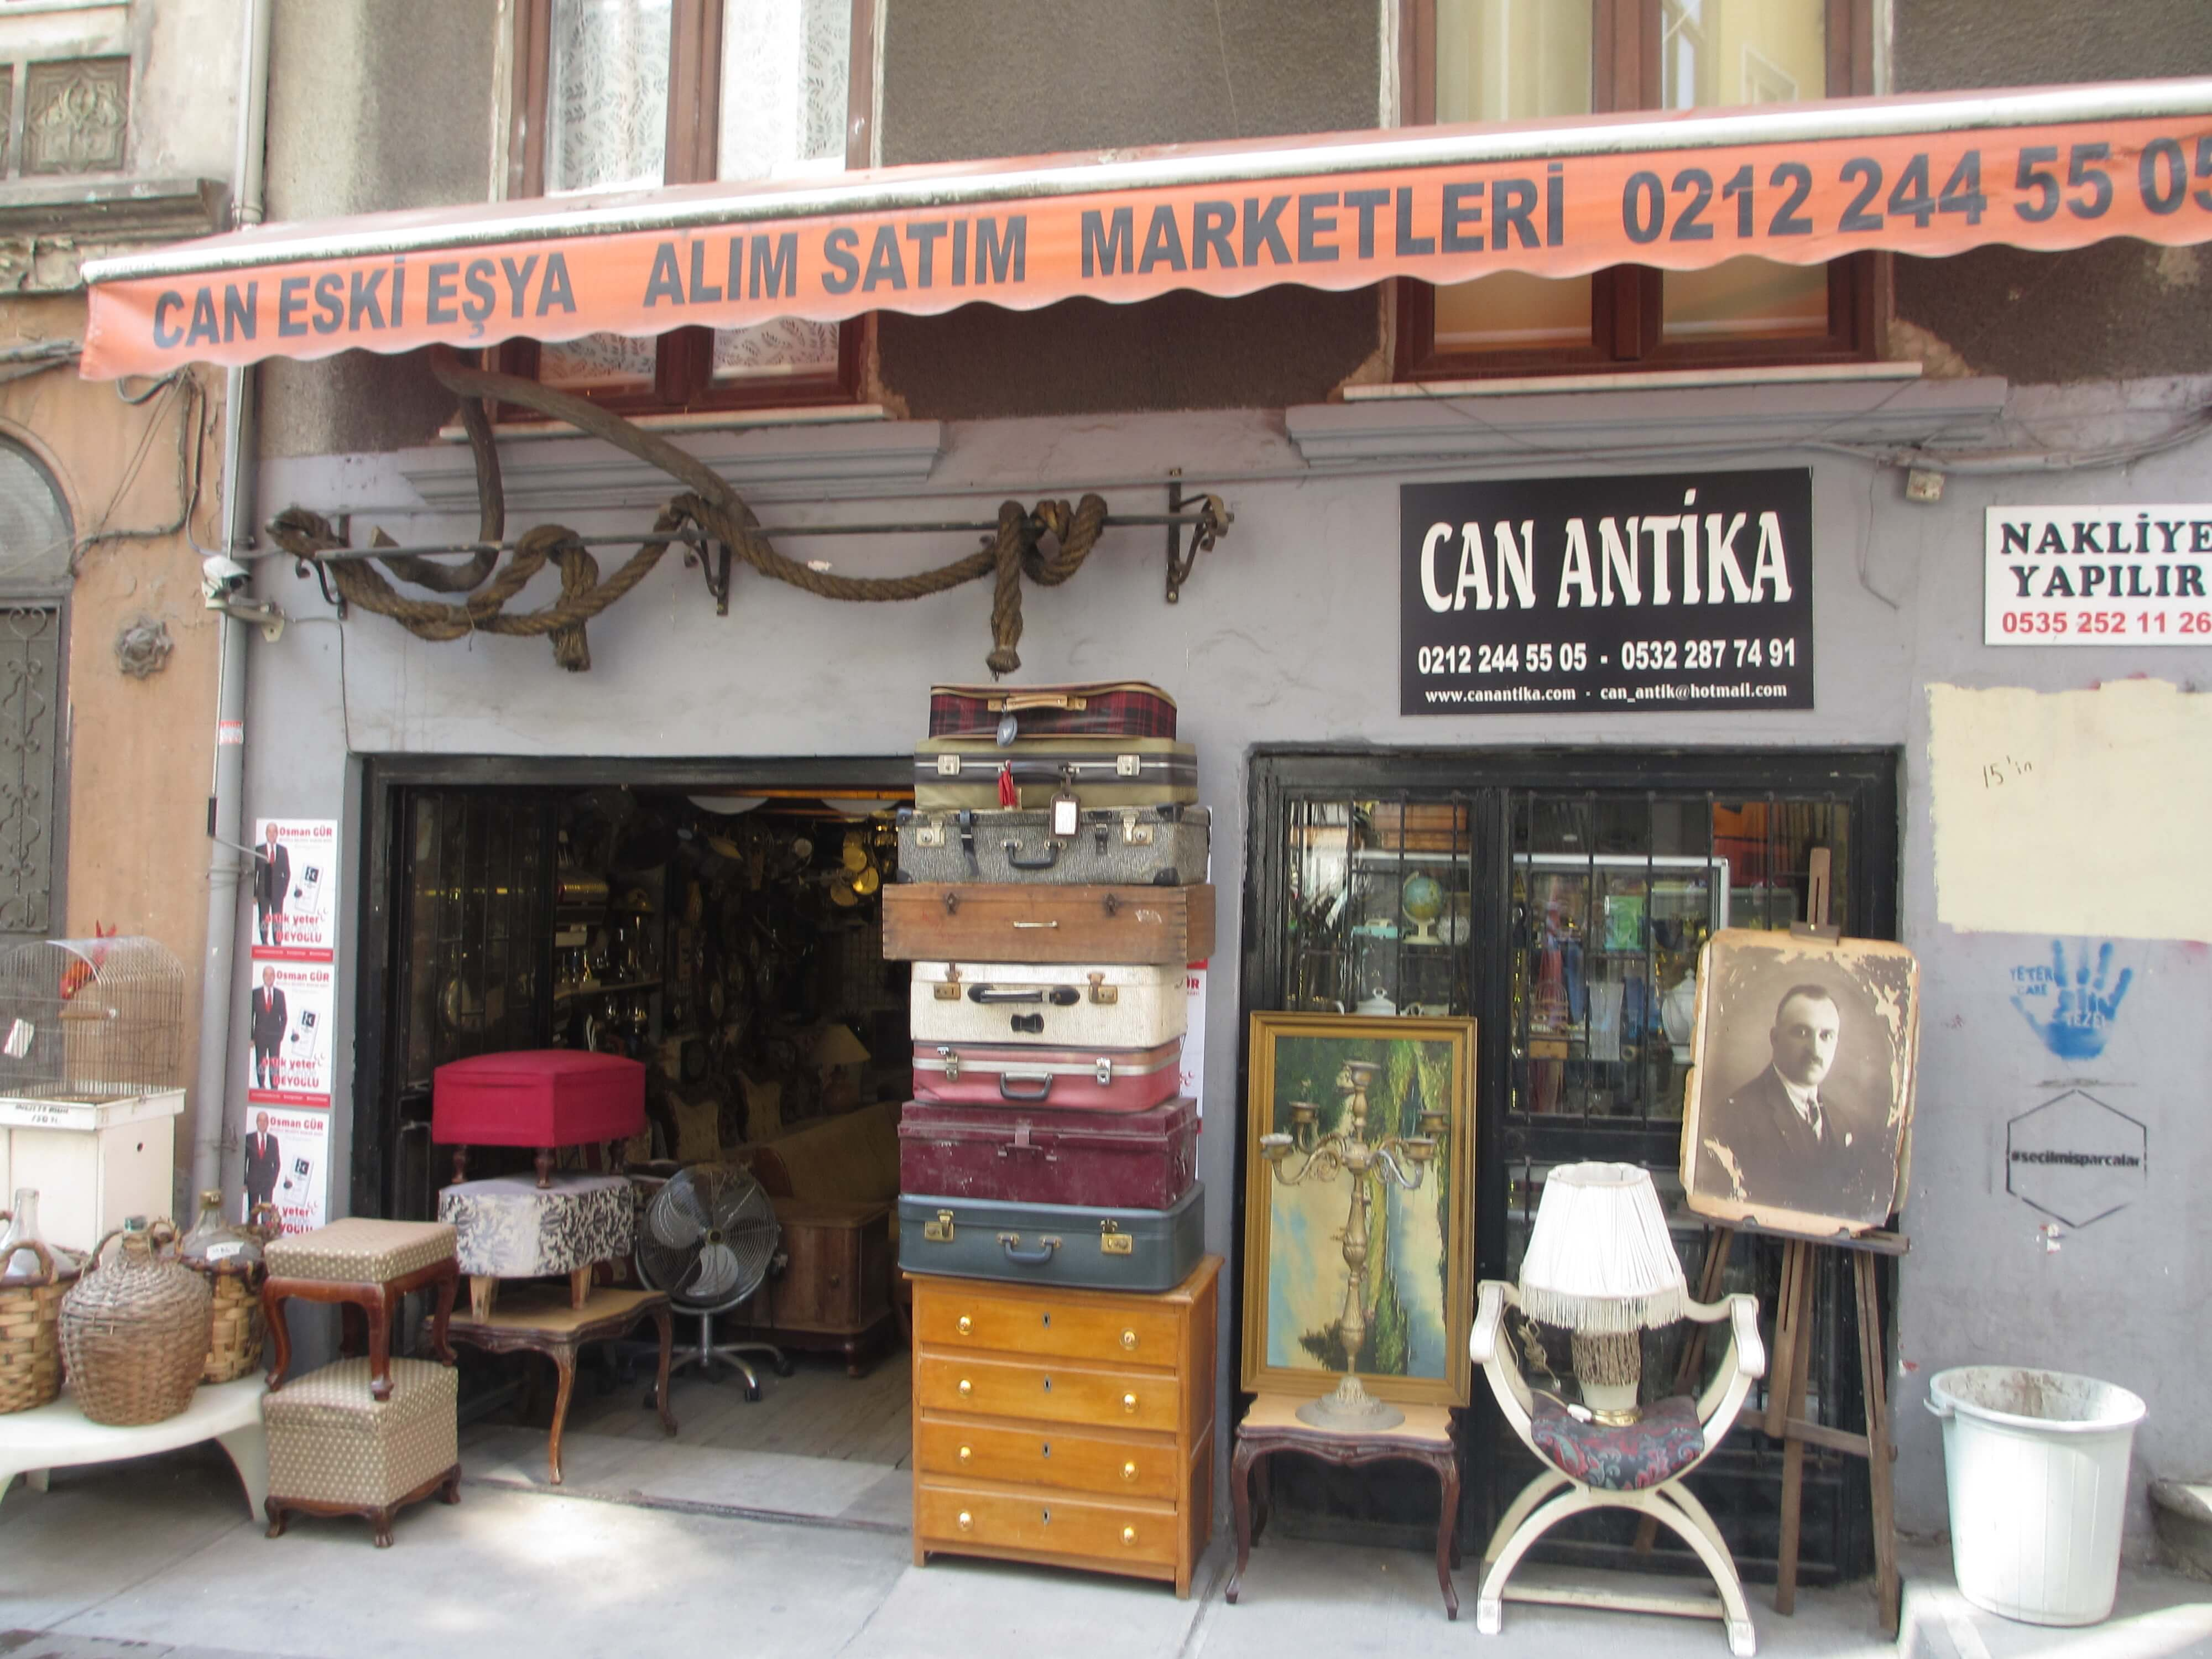 Antique shop with vintage suitcases and chair